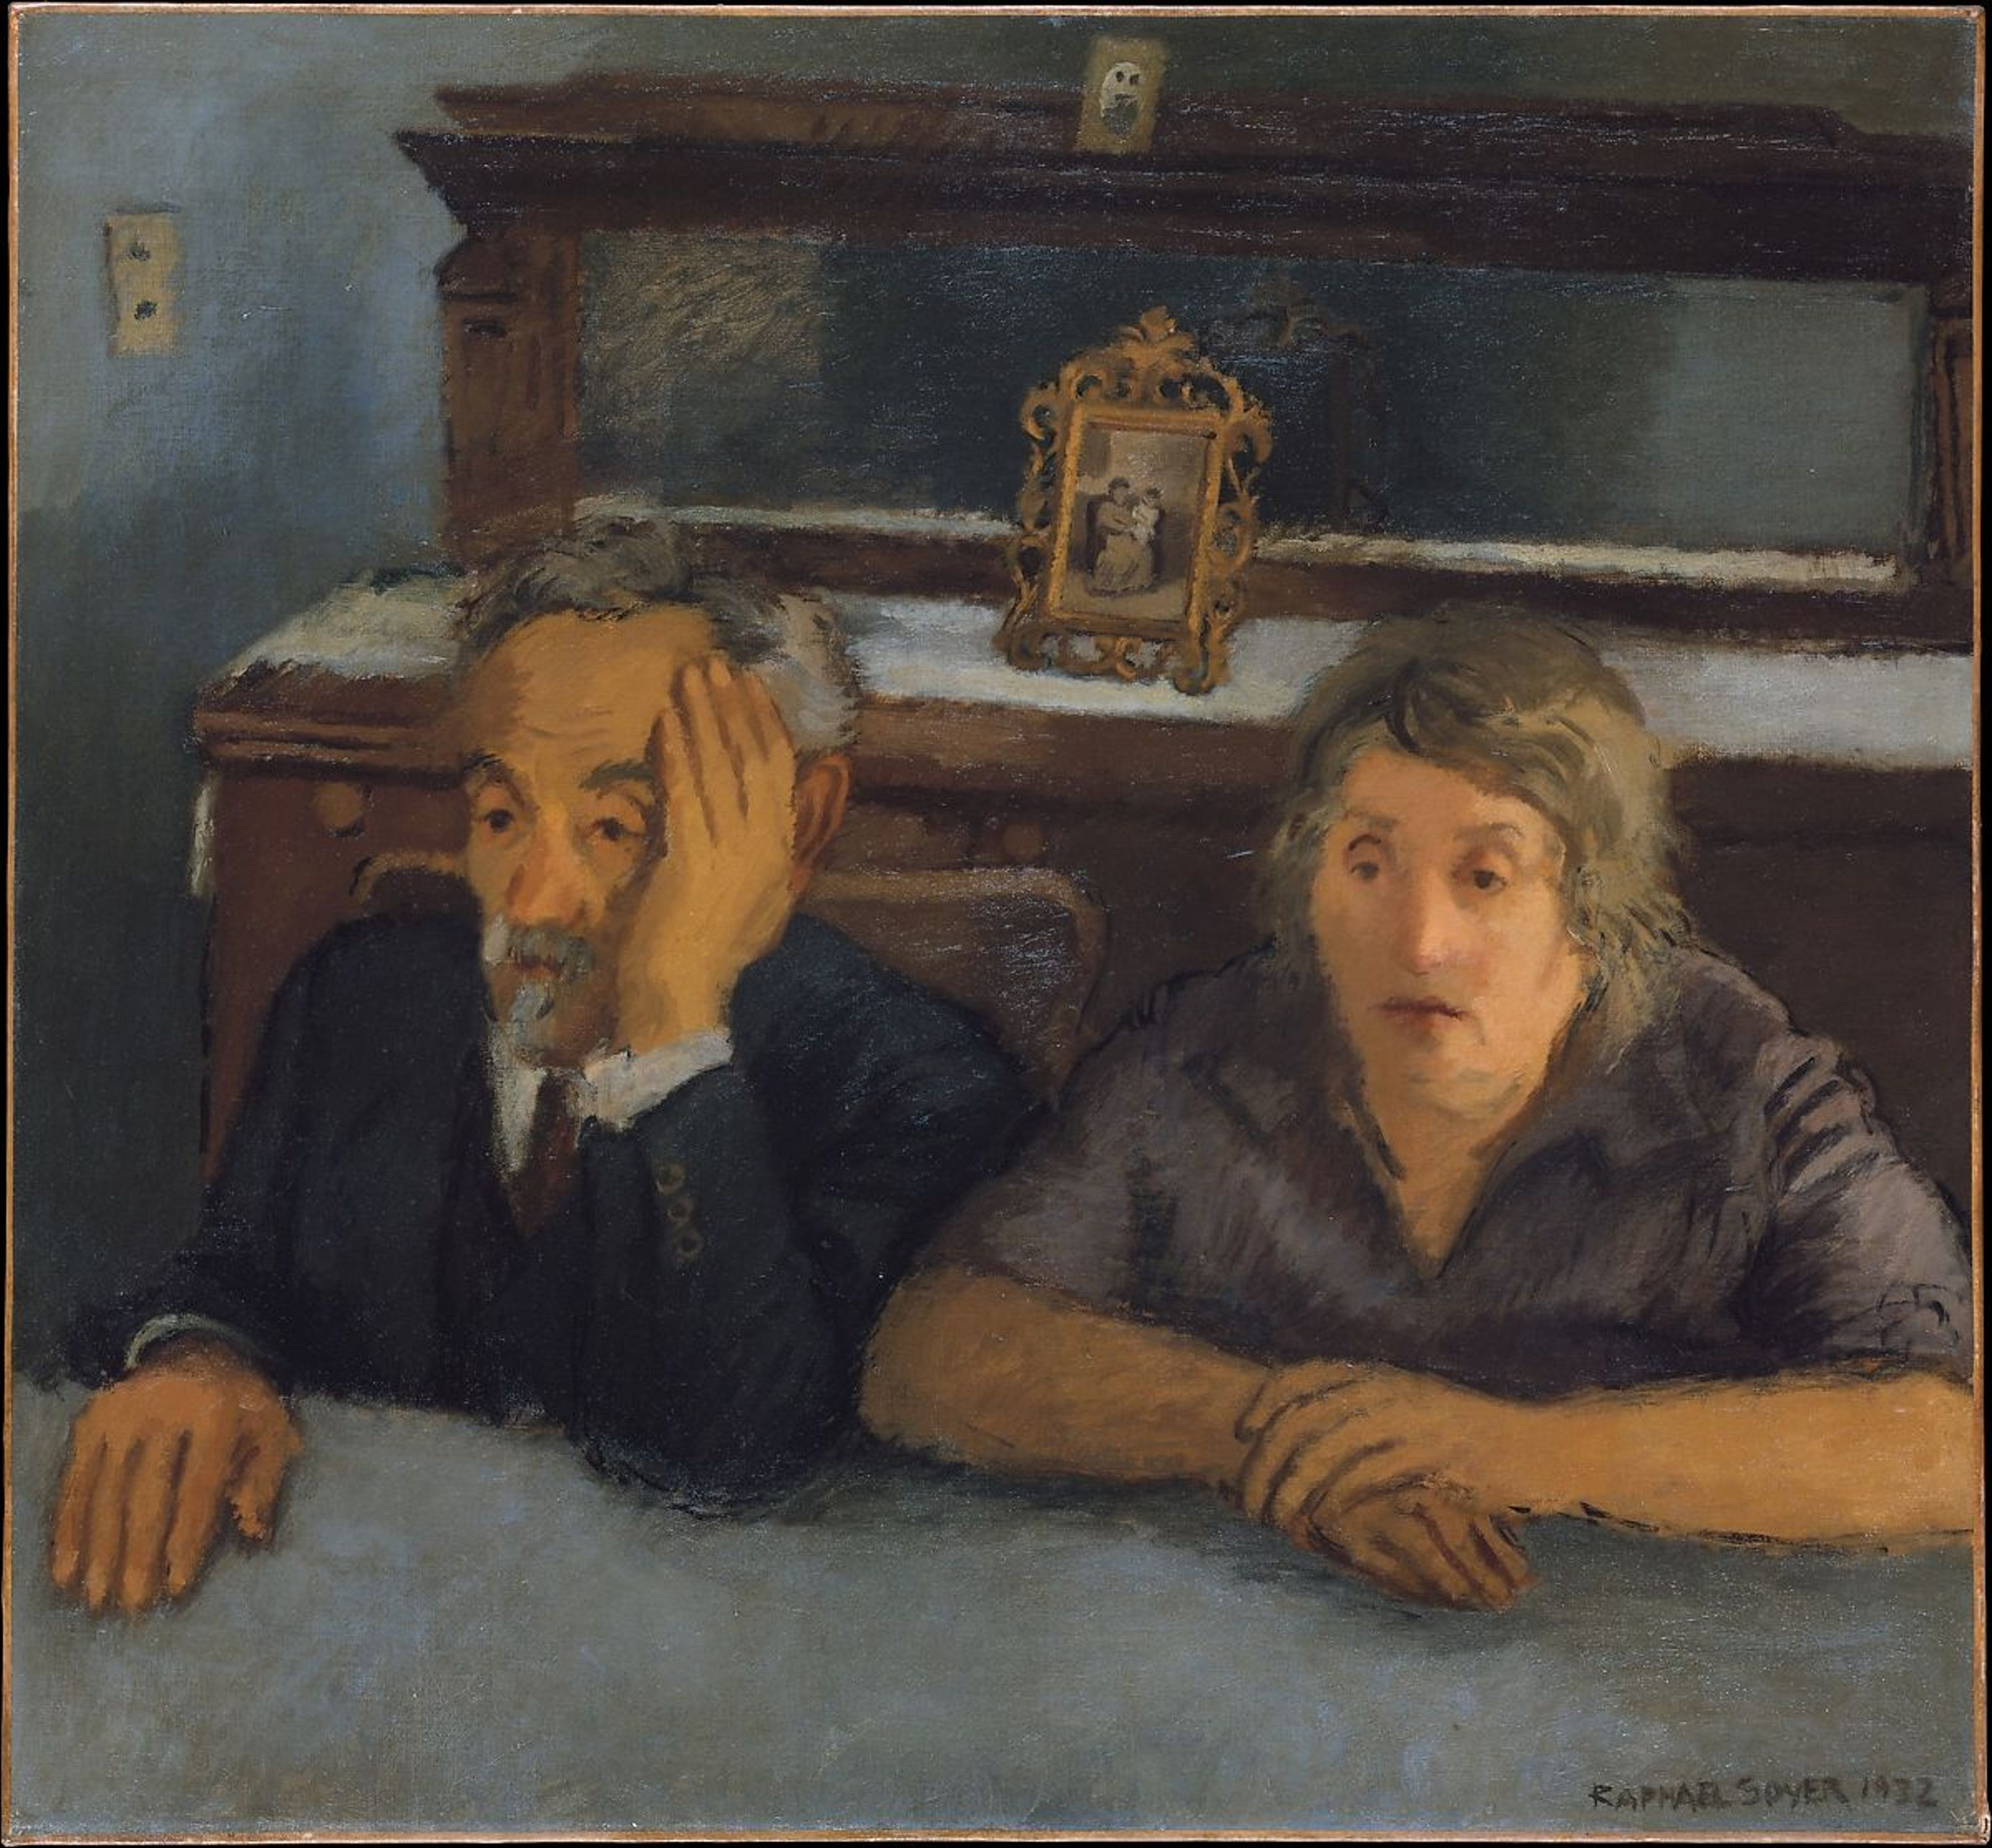 Painting by Rafael Soyer, of an elderly couple sitting at a table.